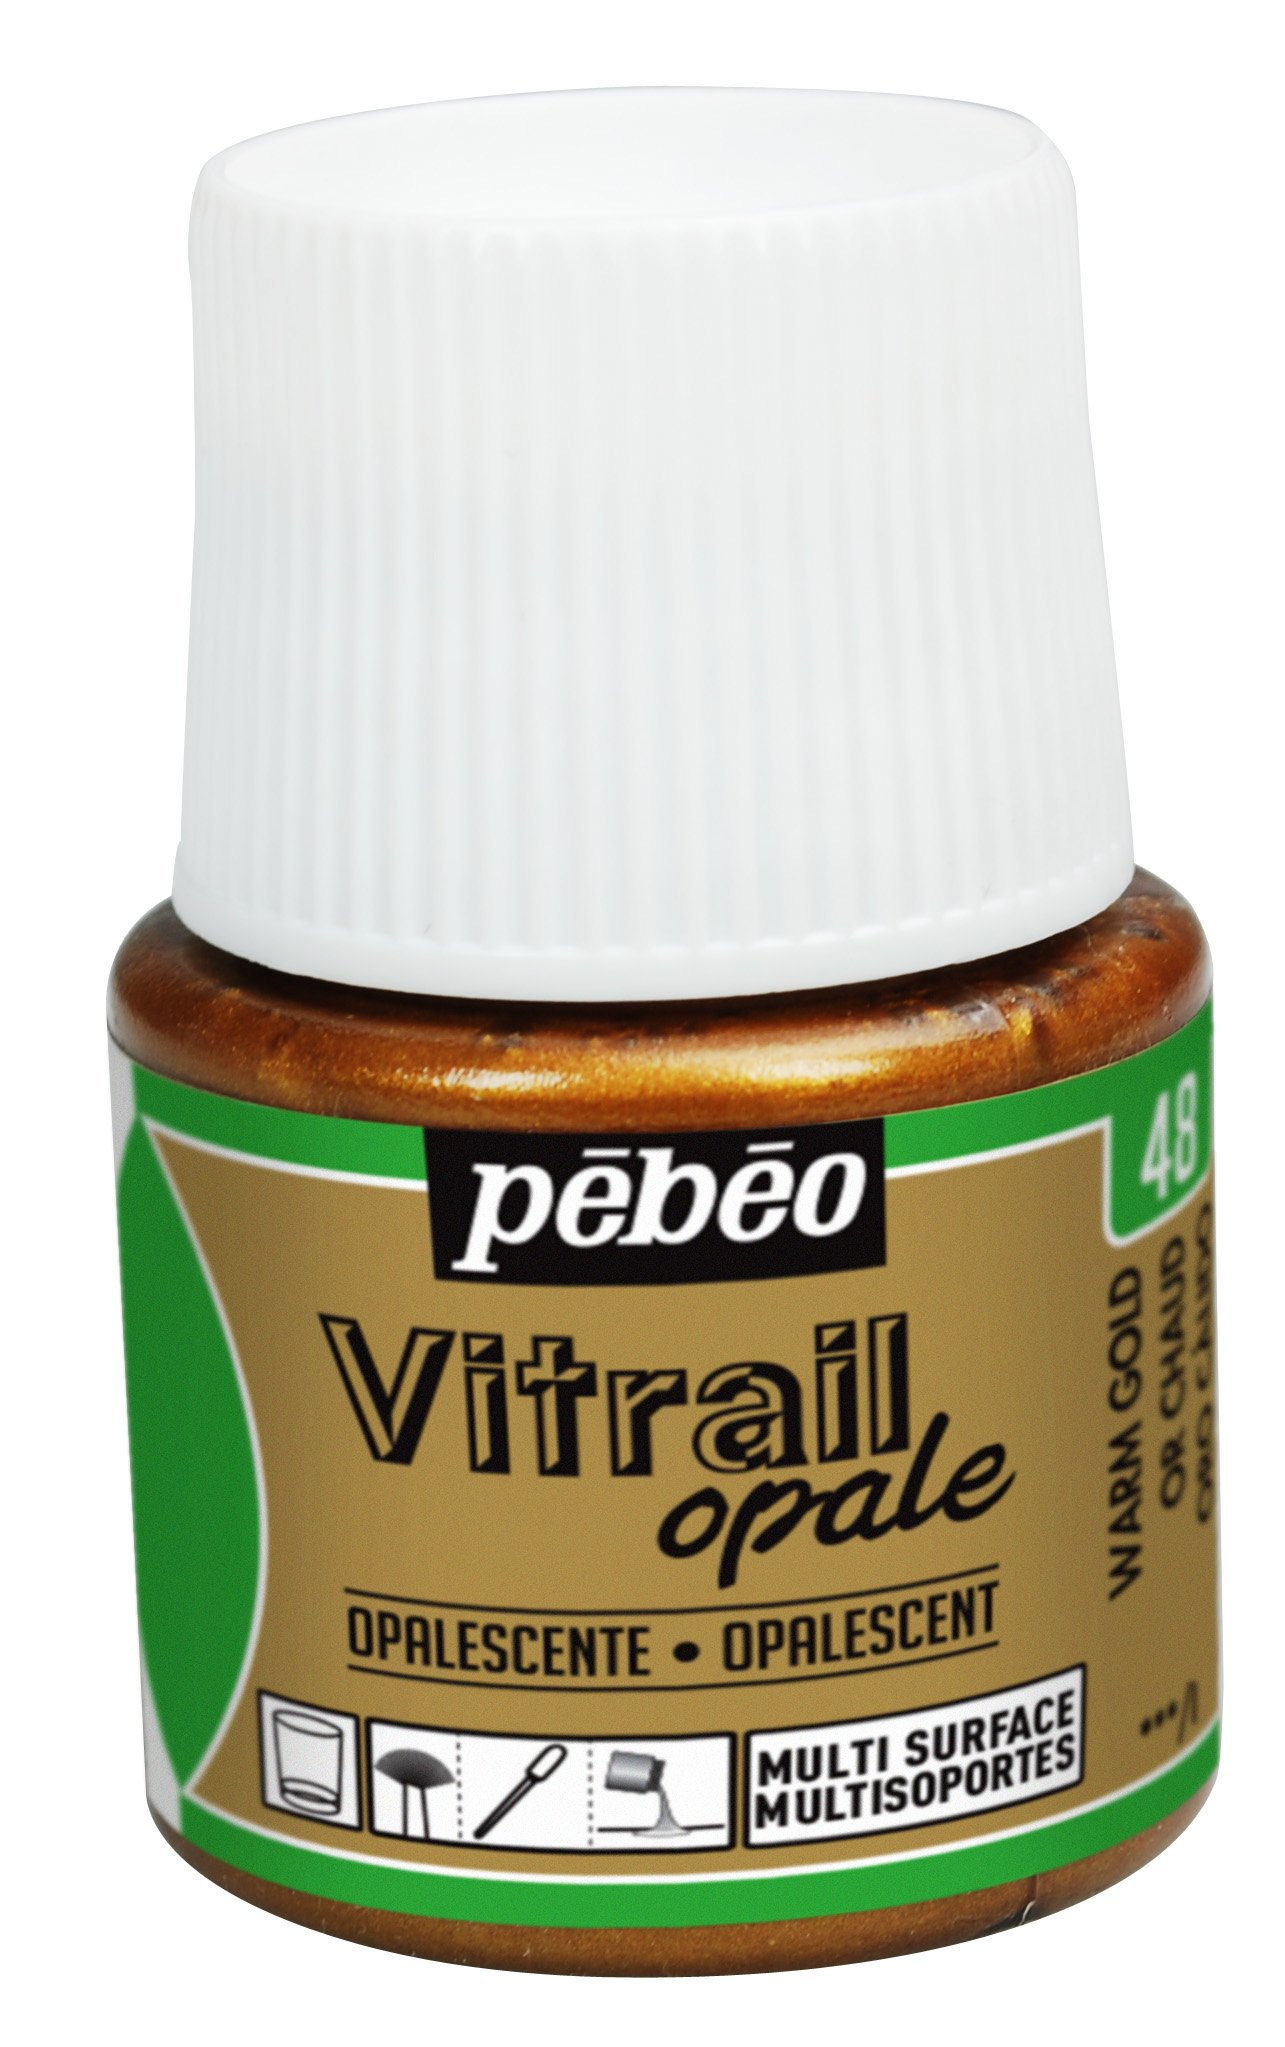 Pebeo Vitrail, Stained Glass Effect Paint, 45 ml Bottle - Warm Gold